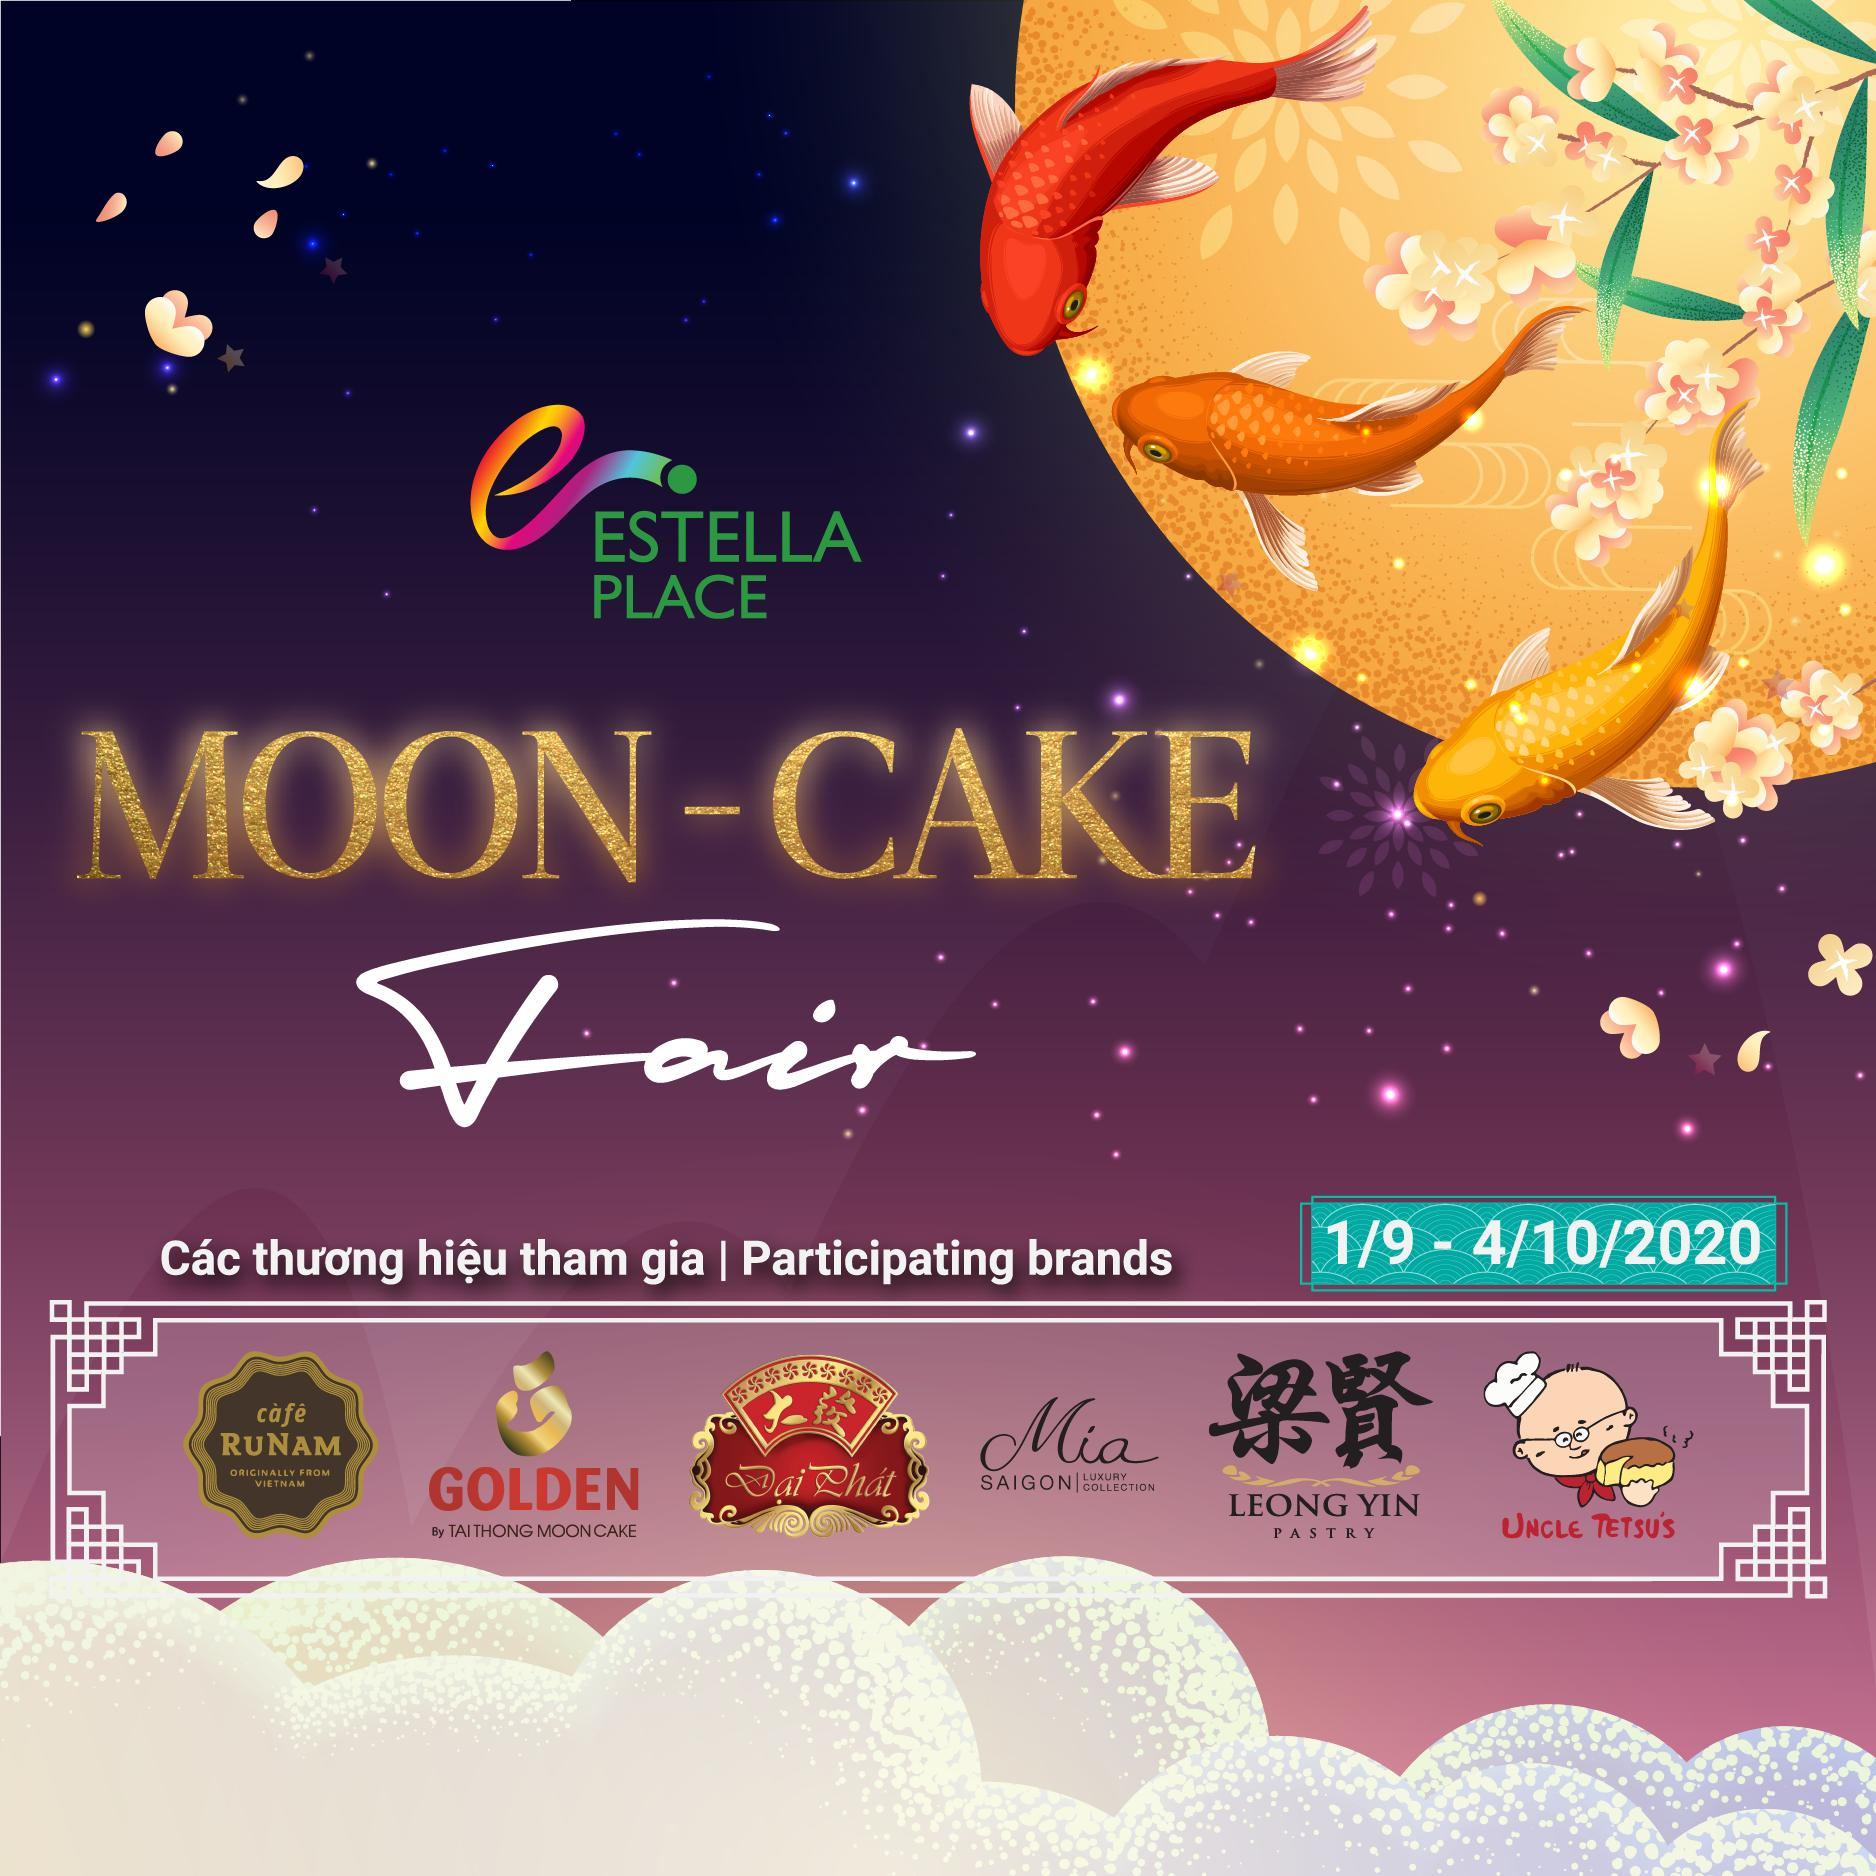 Estella Place Moon Cake Fair 2020